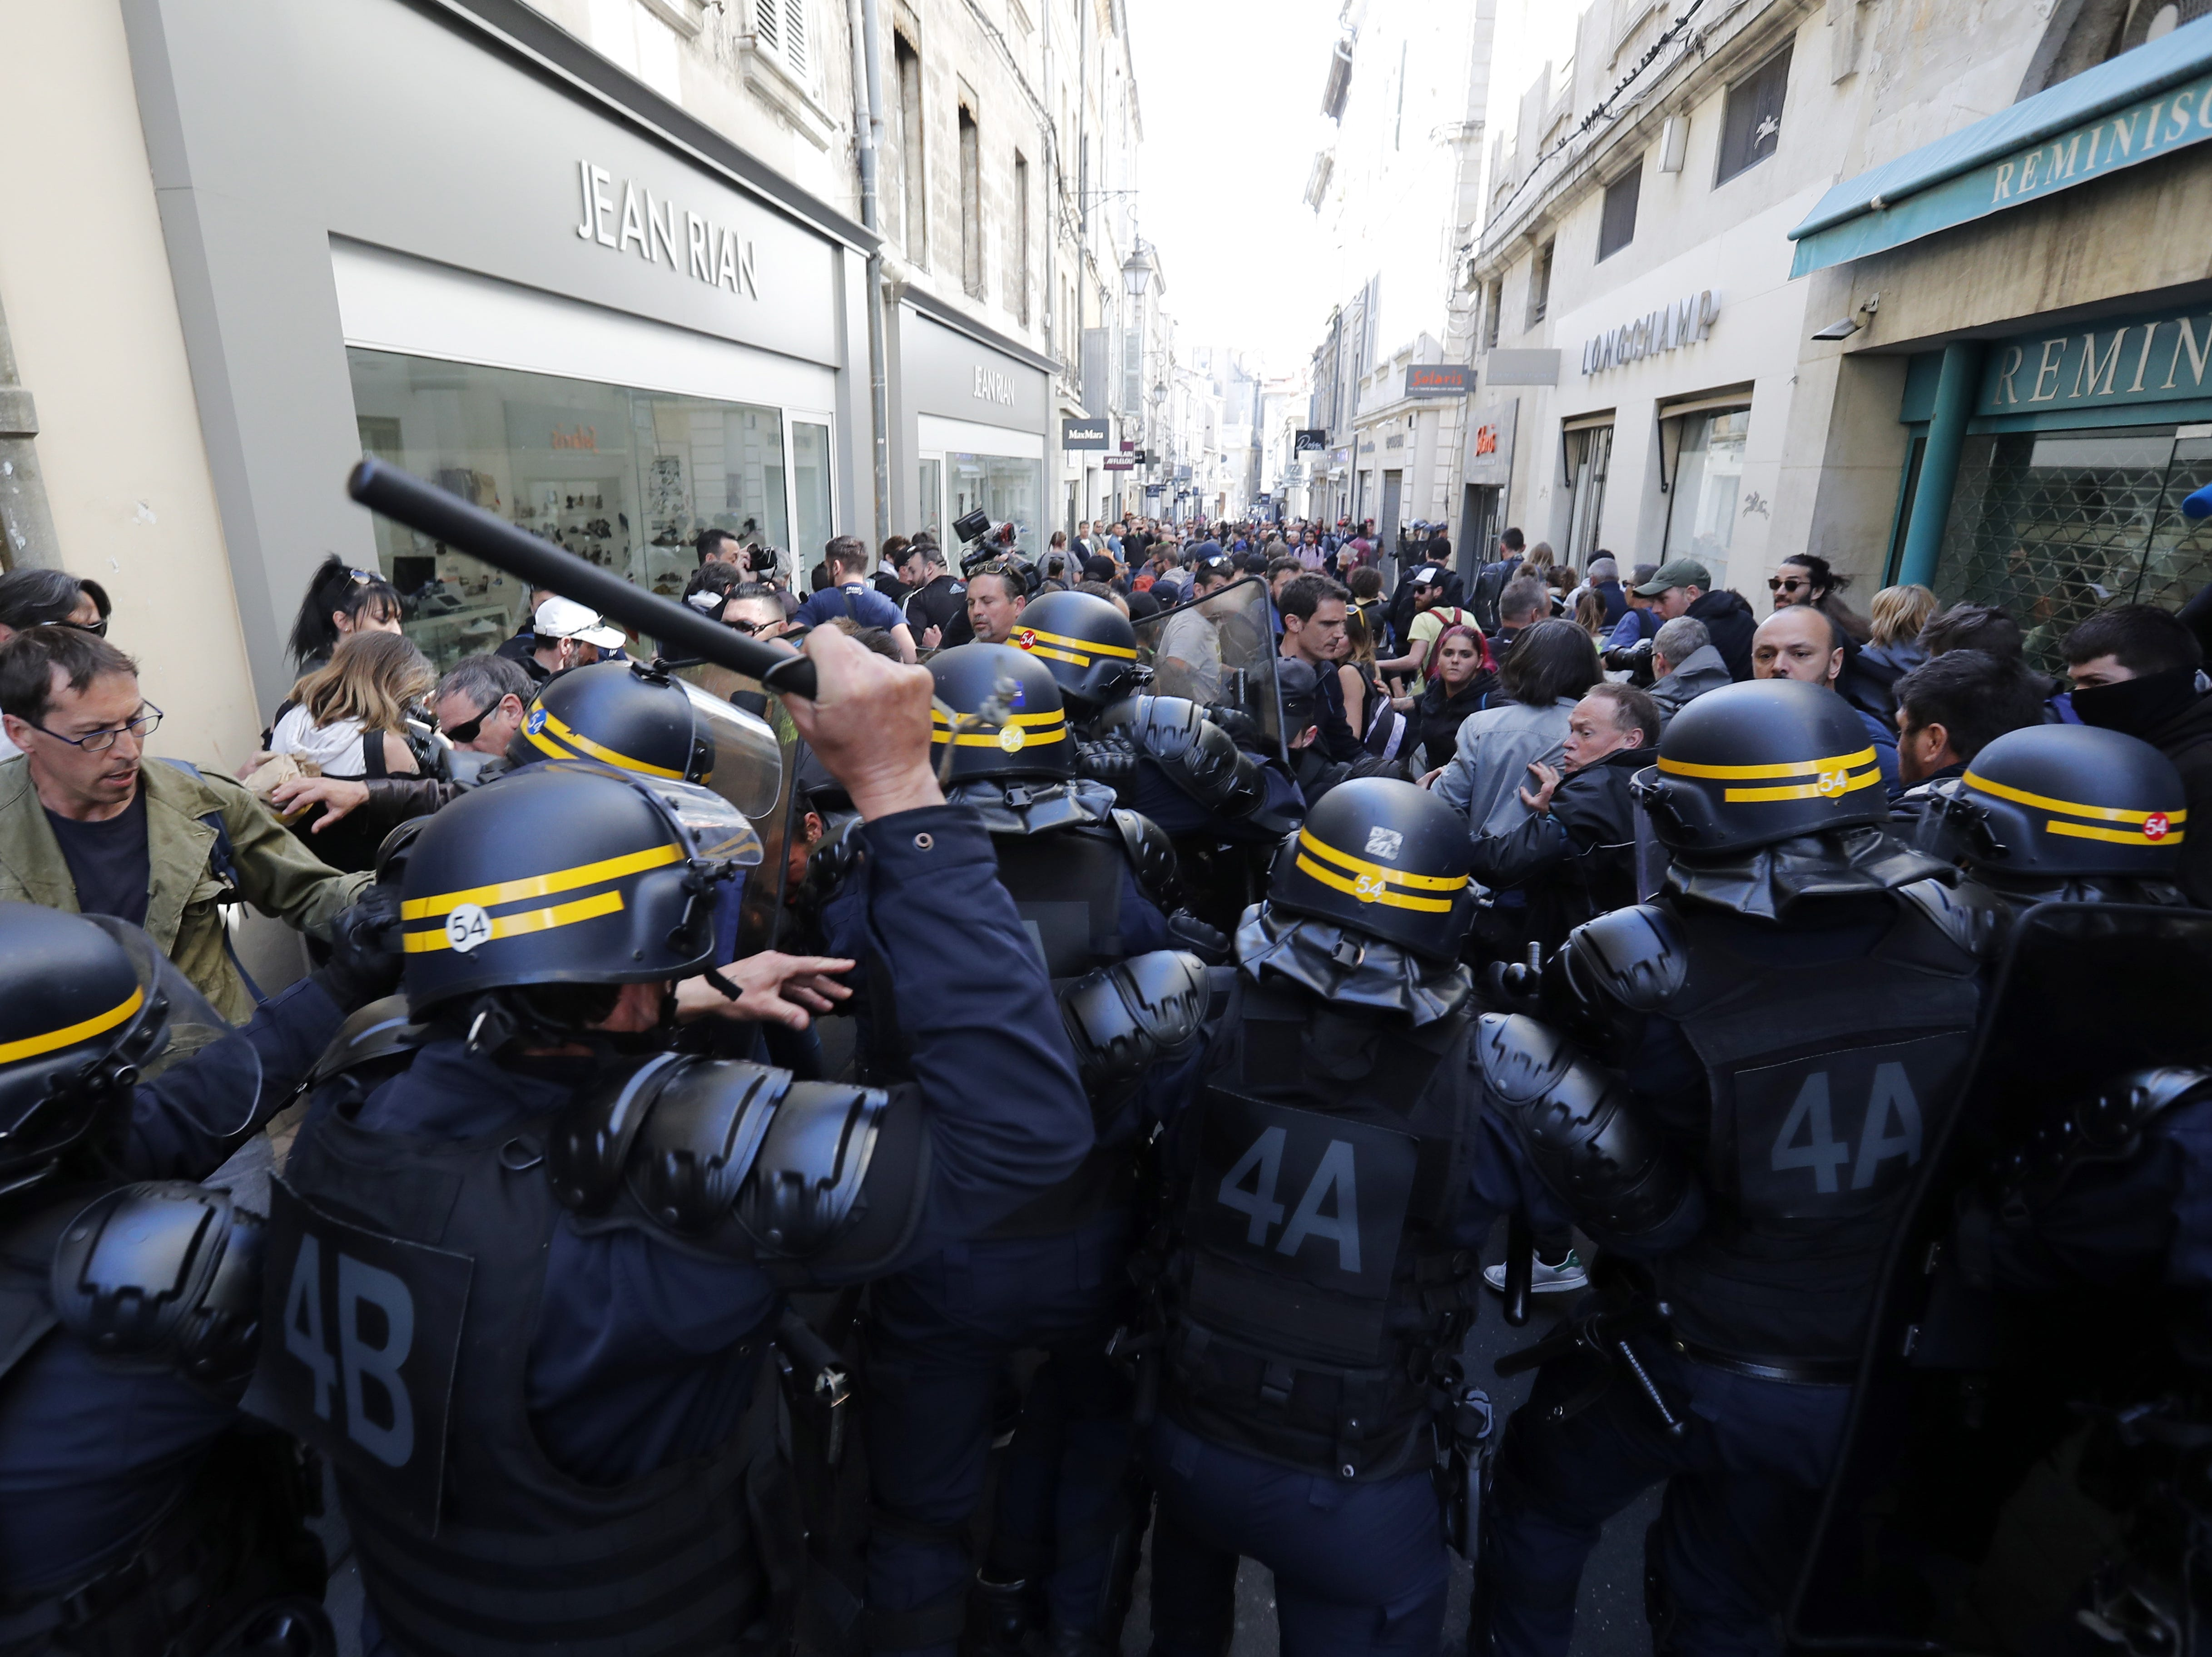 French riot police officers clash with protesters from the 'Gilets Jaunes' (Yellow Vests) movement during the 'Act XX' demonstration (the 20th consecutive national protest on a Saturday) in Avignon, France on March 30, 2019. Yellow Vest protests are expected in several cities across France.